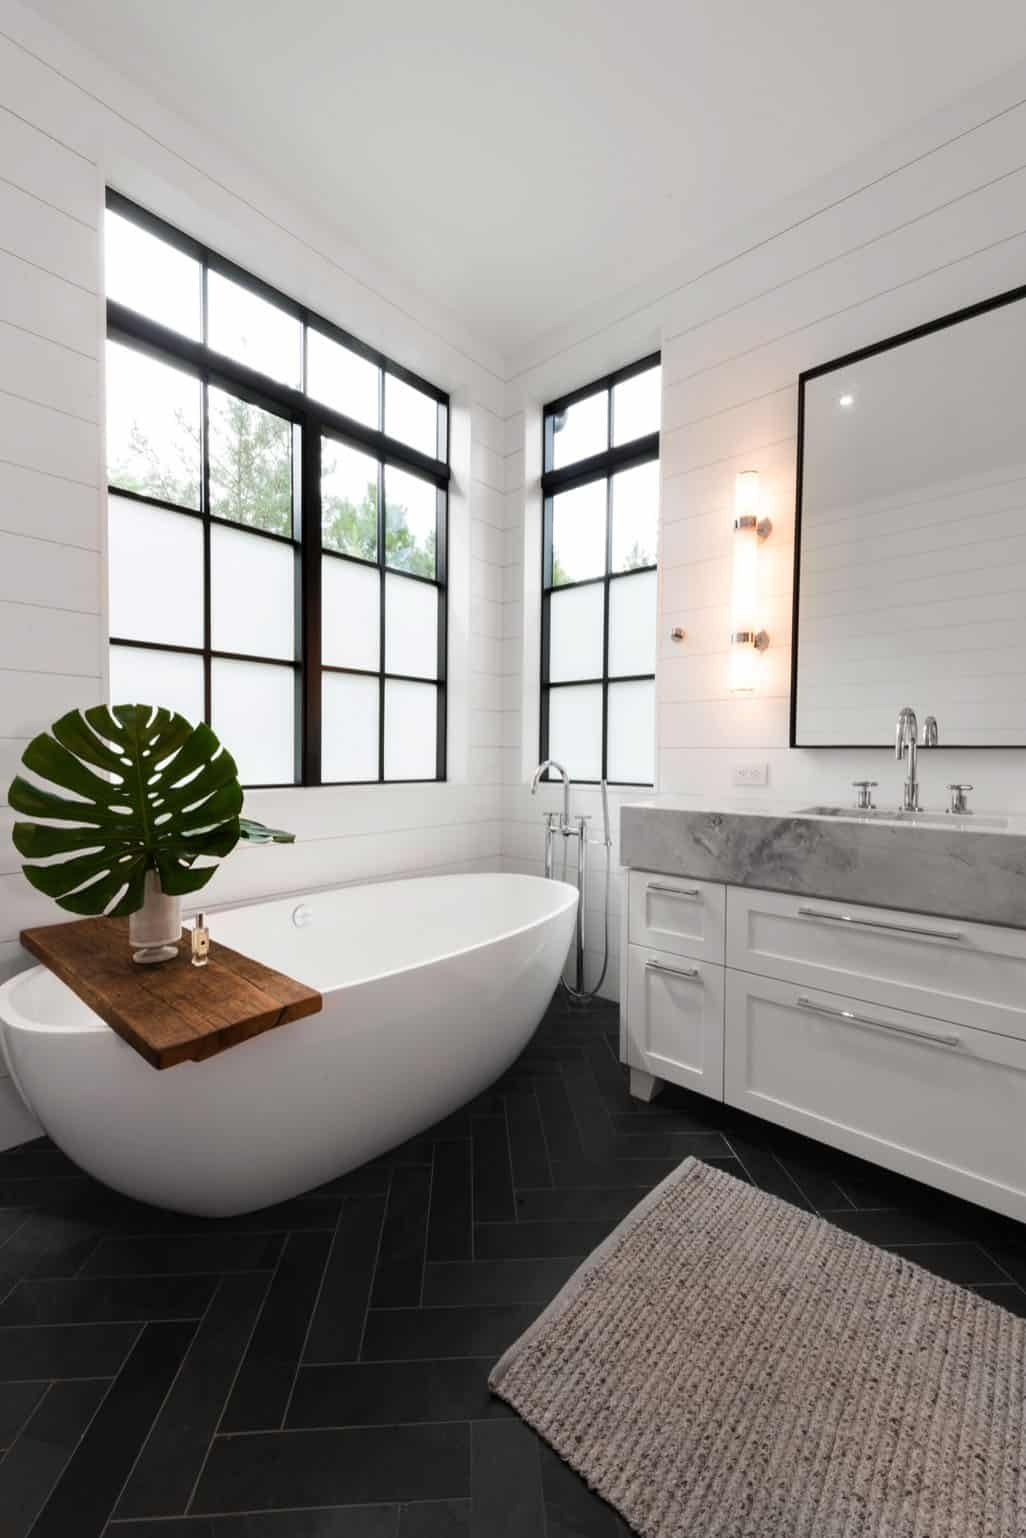 An oval soaking tub is placed at the far end of the bathroom, where it's framed by both windows